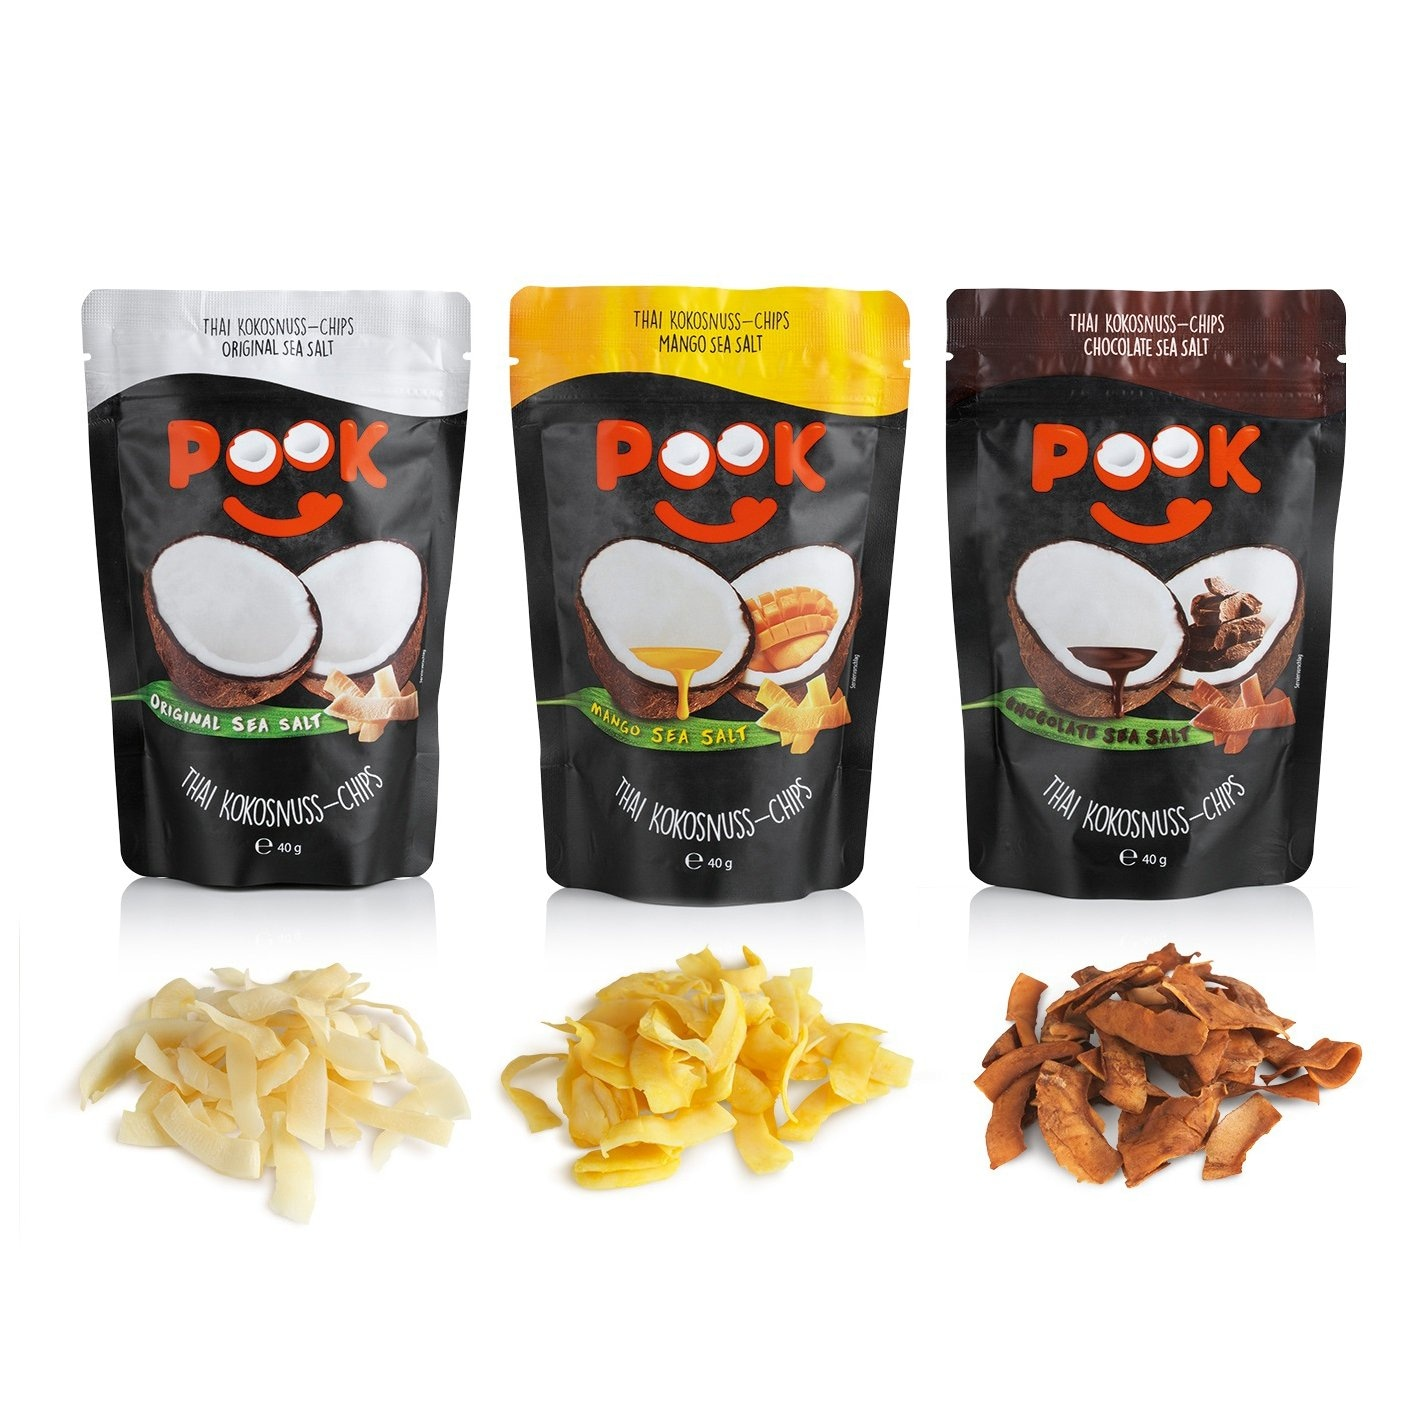 POOK Kokosnuss-Chips Chocolate Sea Salt 8er-Set 40g